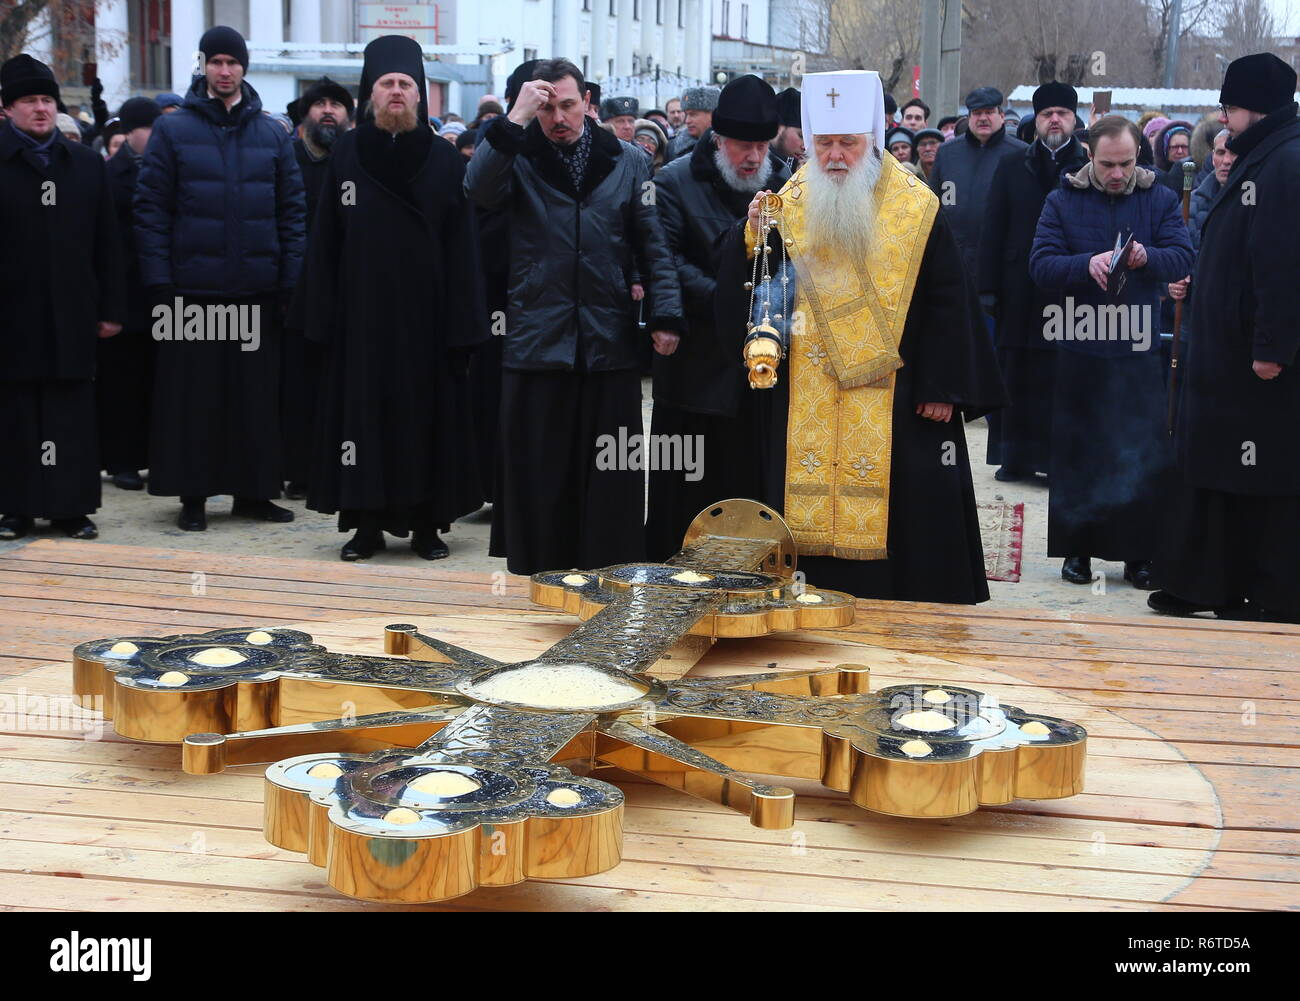 VOLGOGRAD, RUSSIA - DECEMBER 6, 2018: A Russian Orthodox priest consecrating a cross of the Alexander Nevsky Cathedral under construction in Volgograd. Dmitry Rogulin/TASS - Stock Image